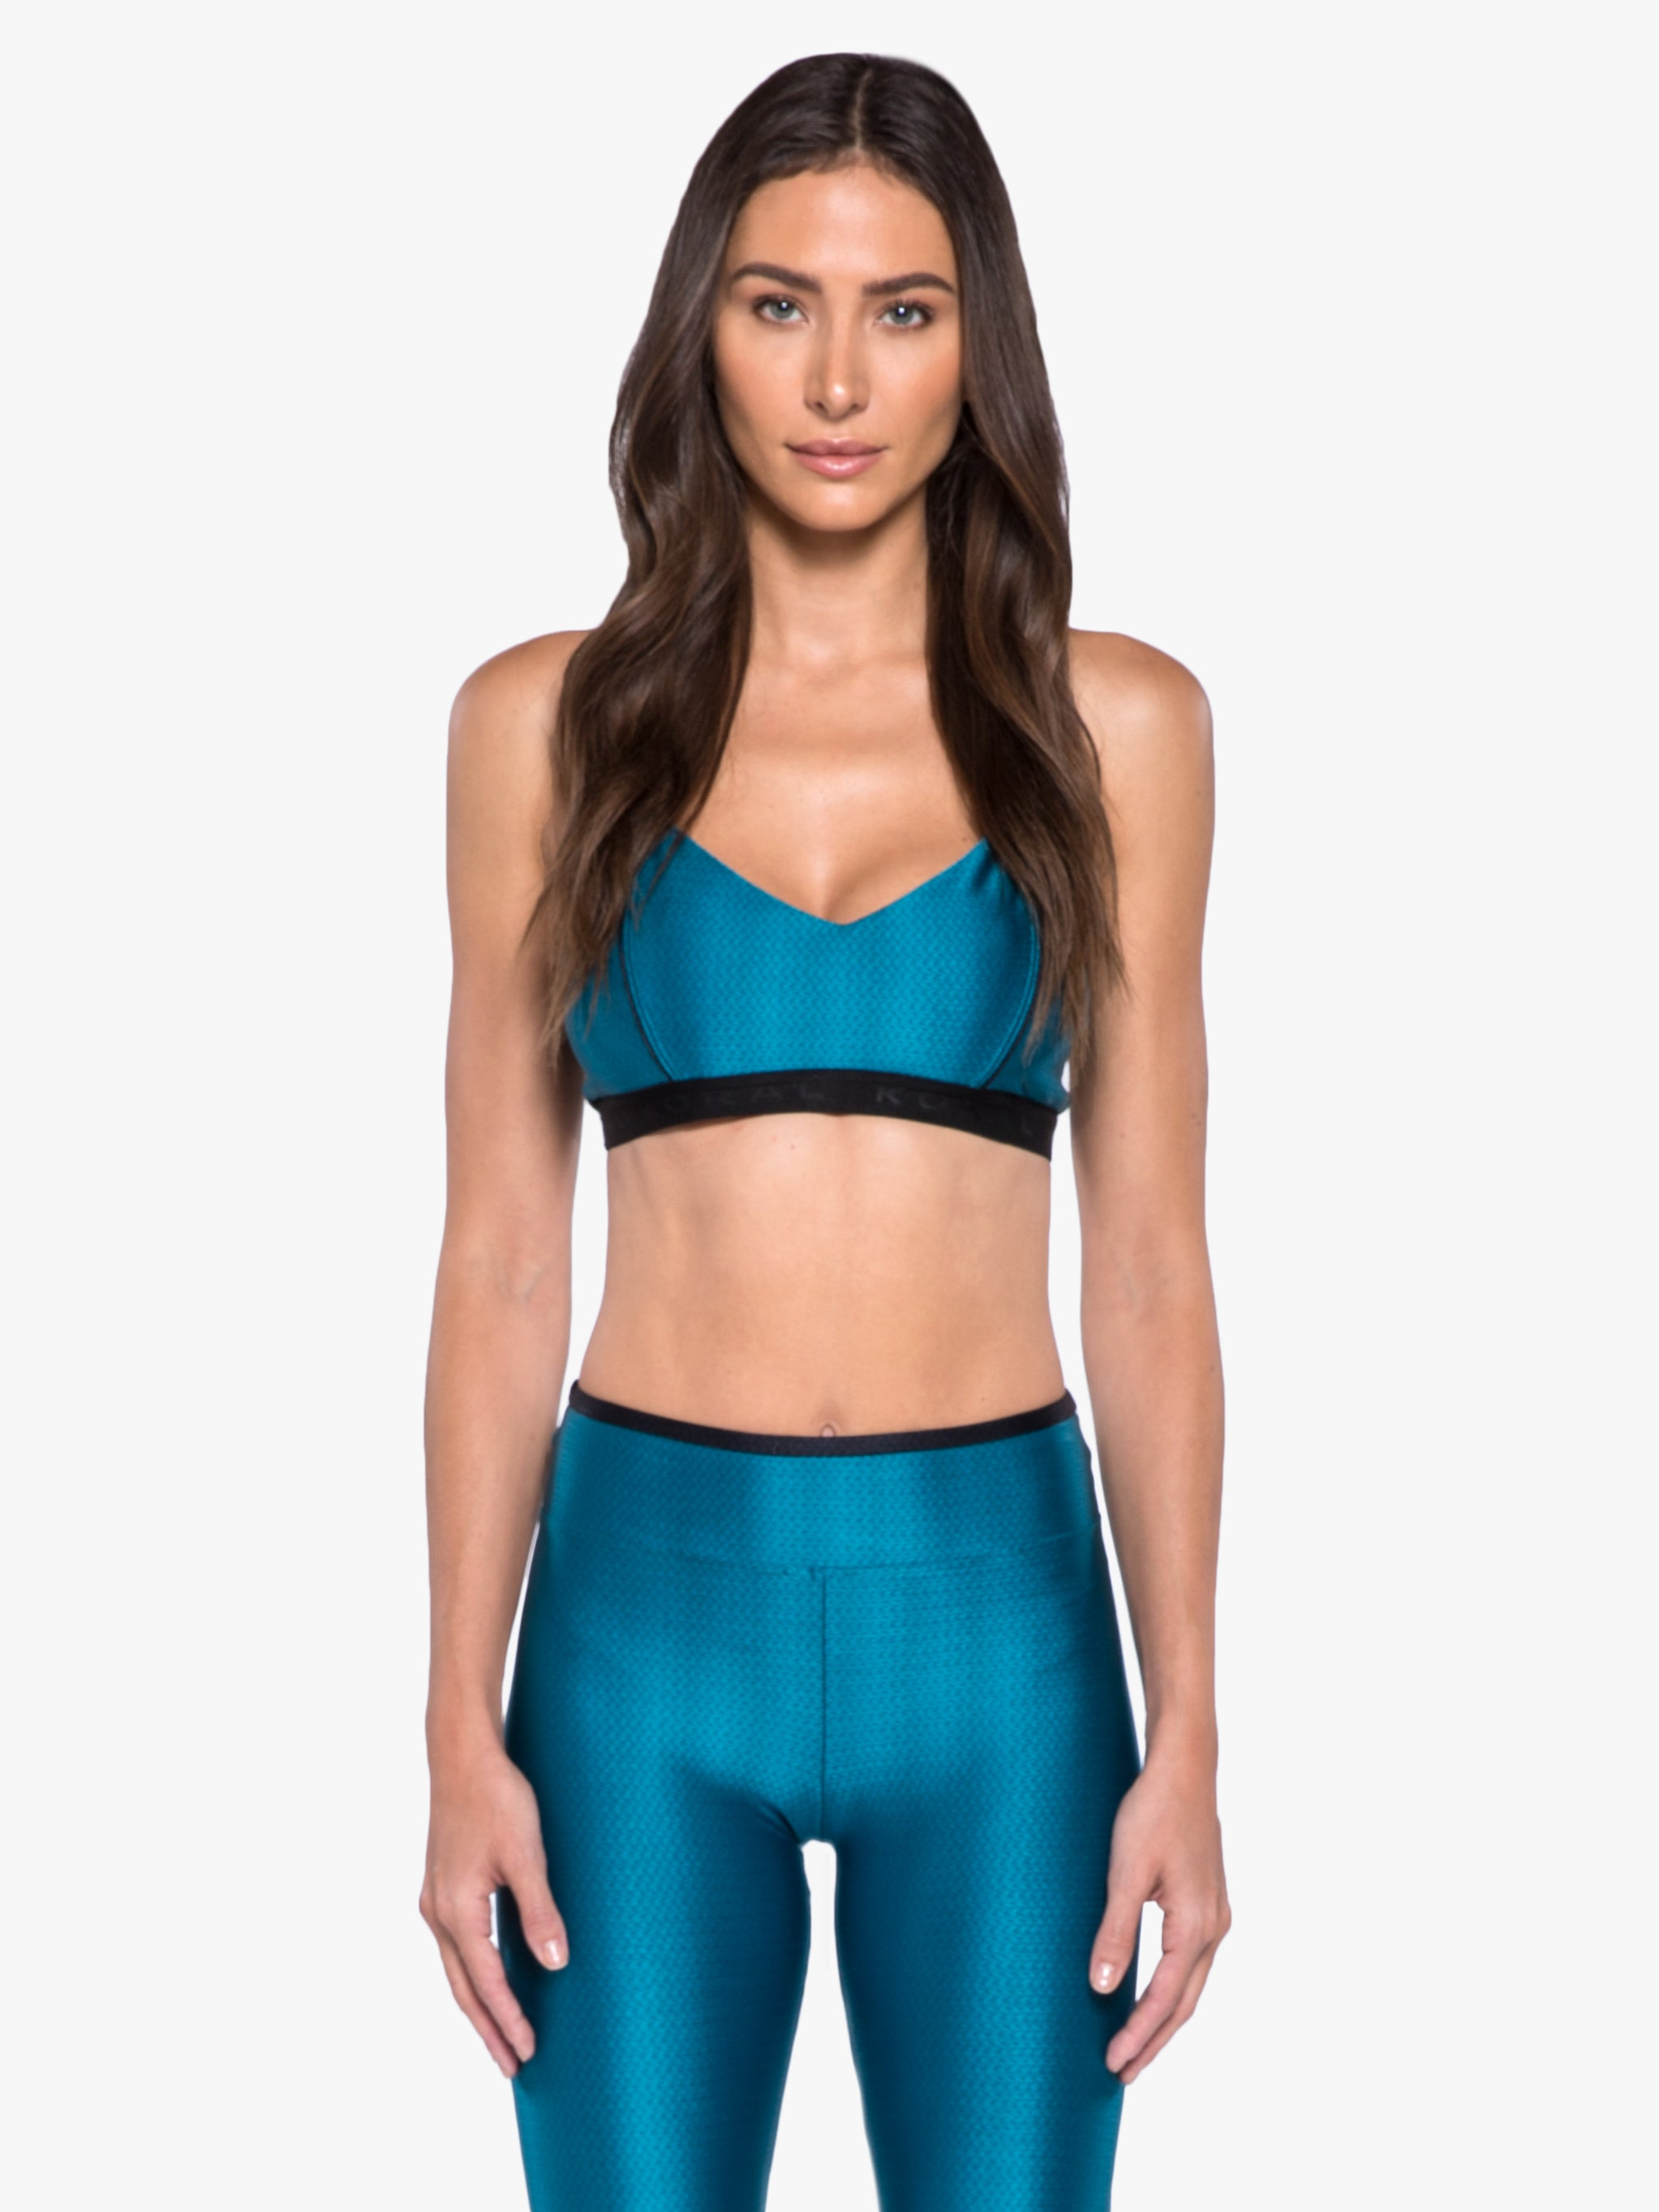 Cable Sports Bra - Calypso Teal